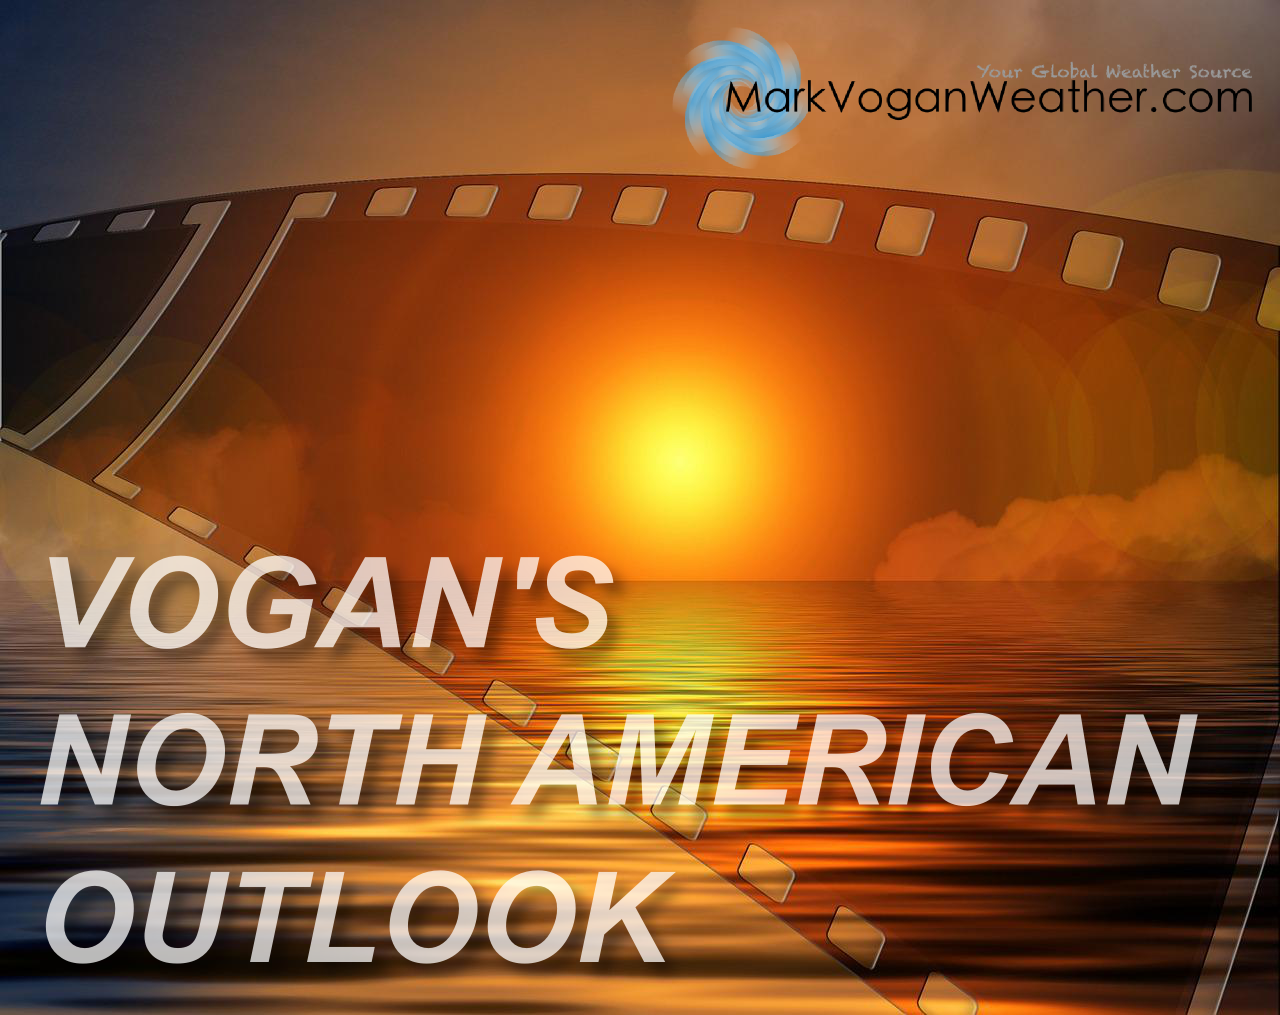 SAT 13 SEP: VOGAN'S NORTH AMERICA (LONG RANGE) OUTLOOK